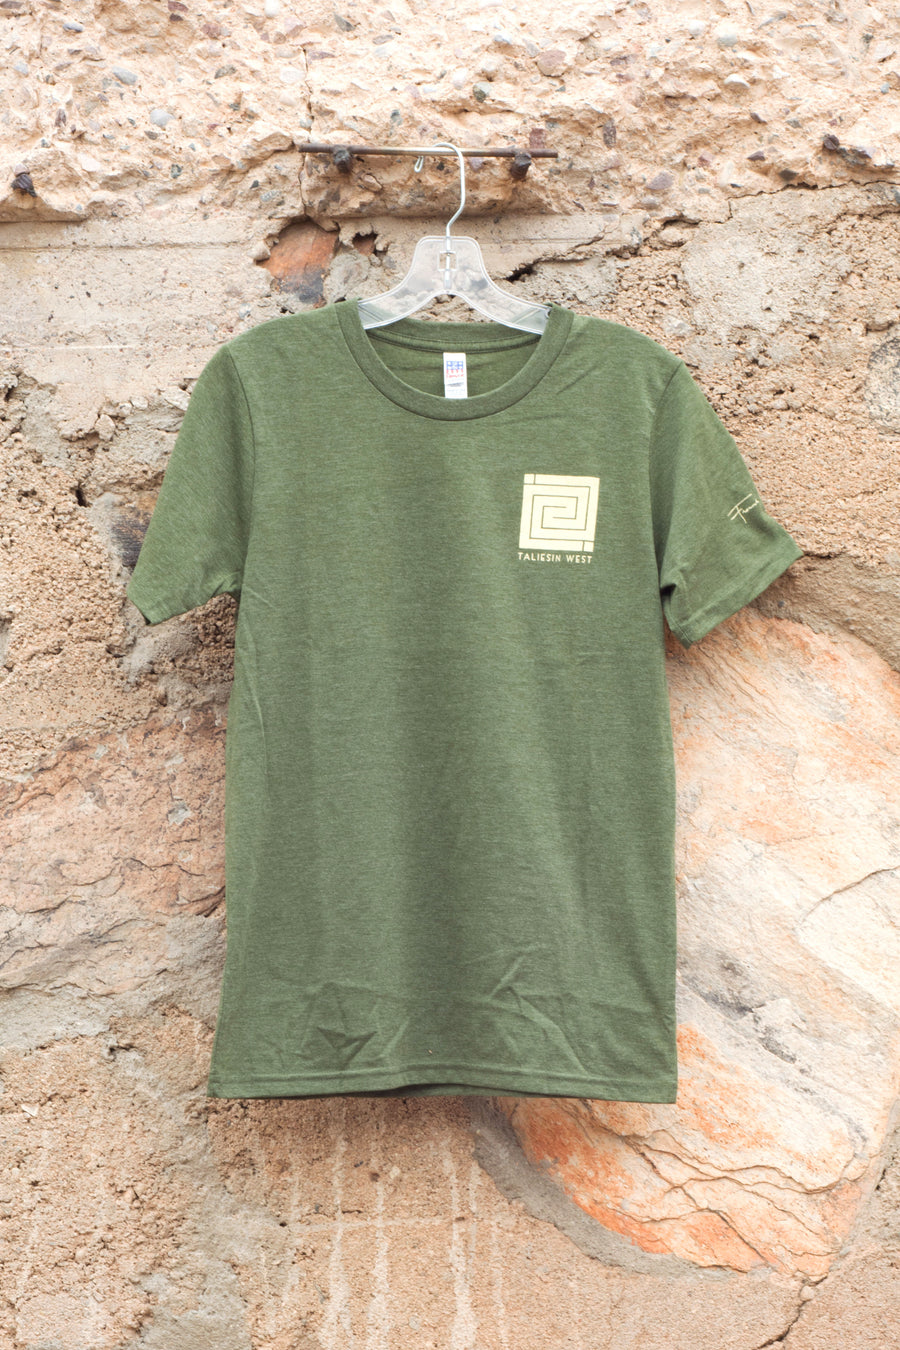 Image shows front of T-shirt with off-white Whirling Arrow on left.